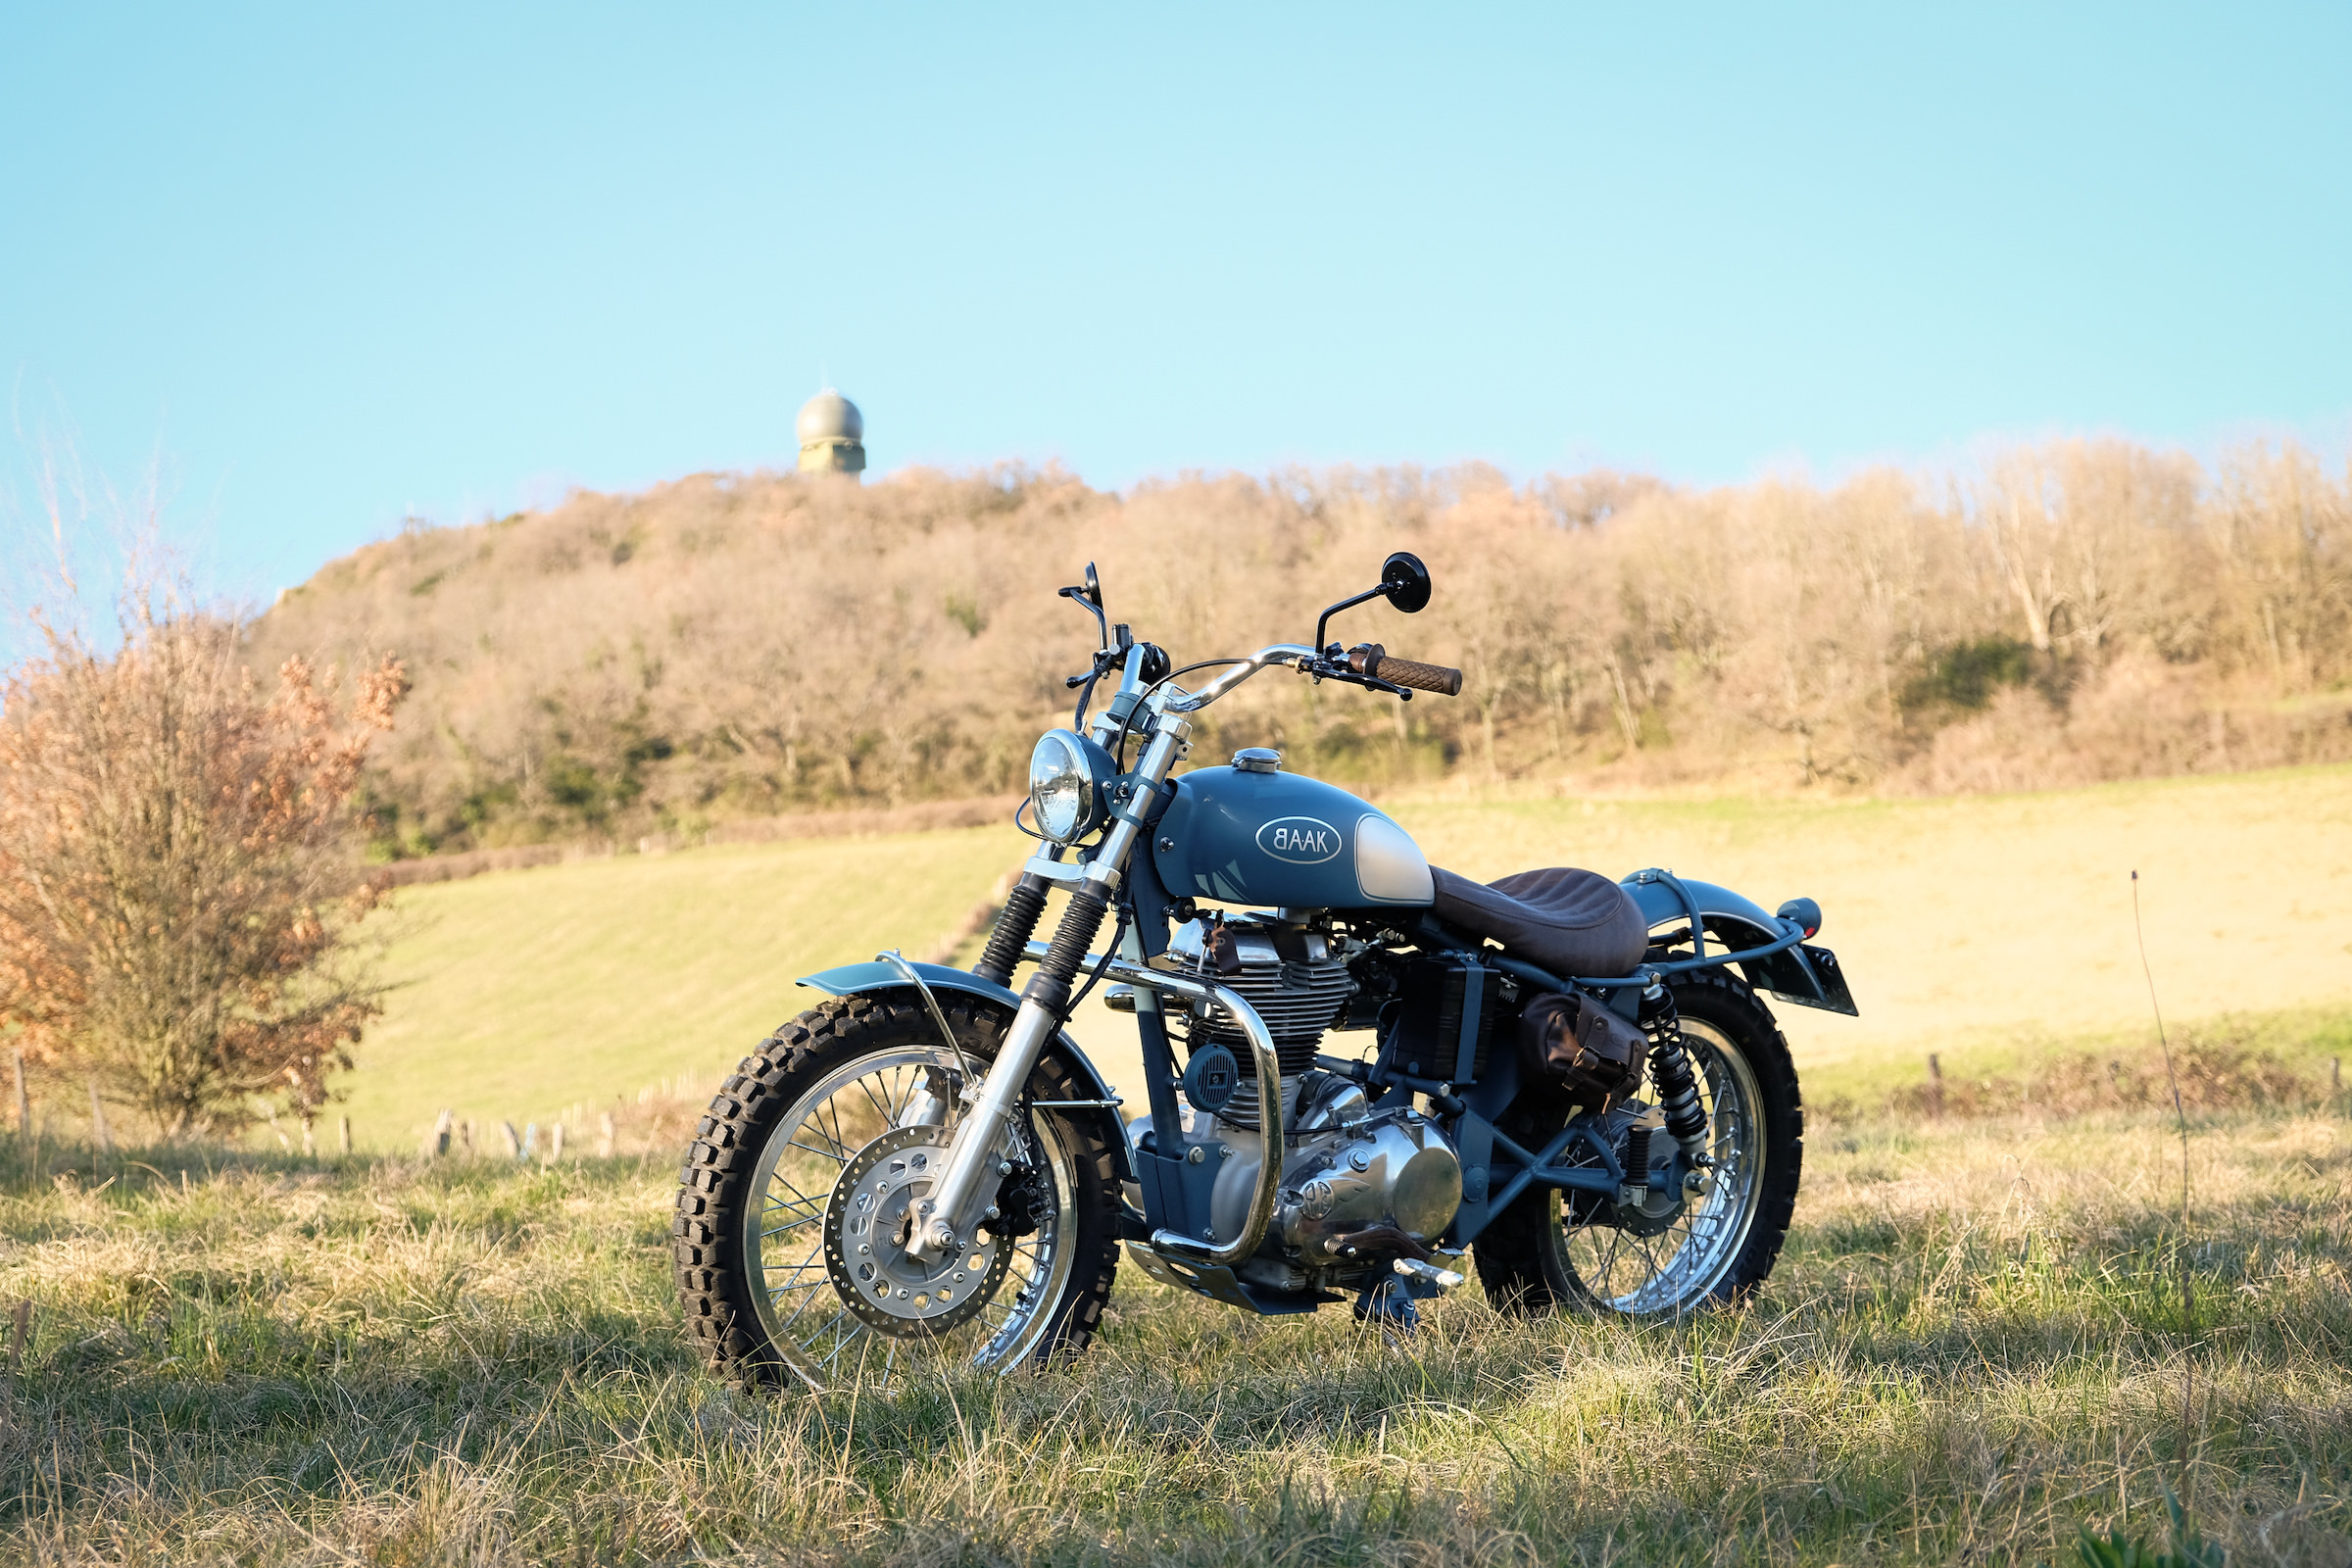 A Beautiful Royal Enfield Classic 500 Scrambler By Baak